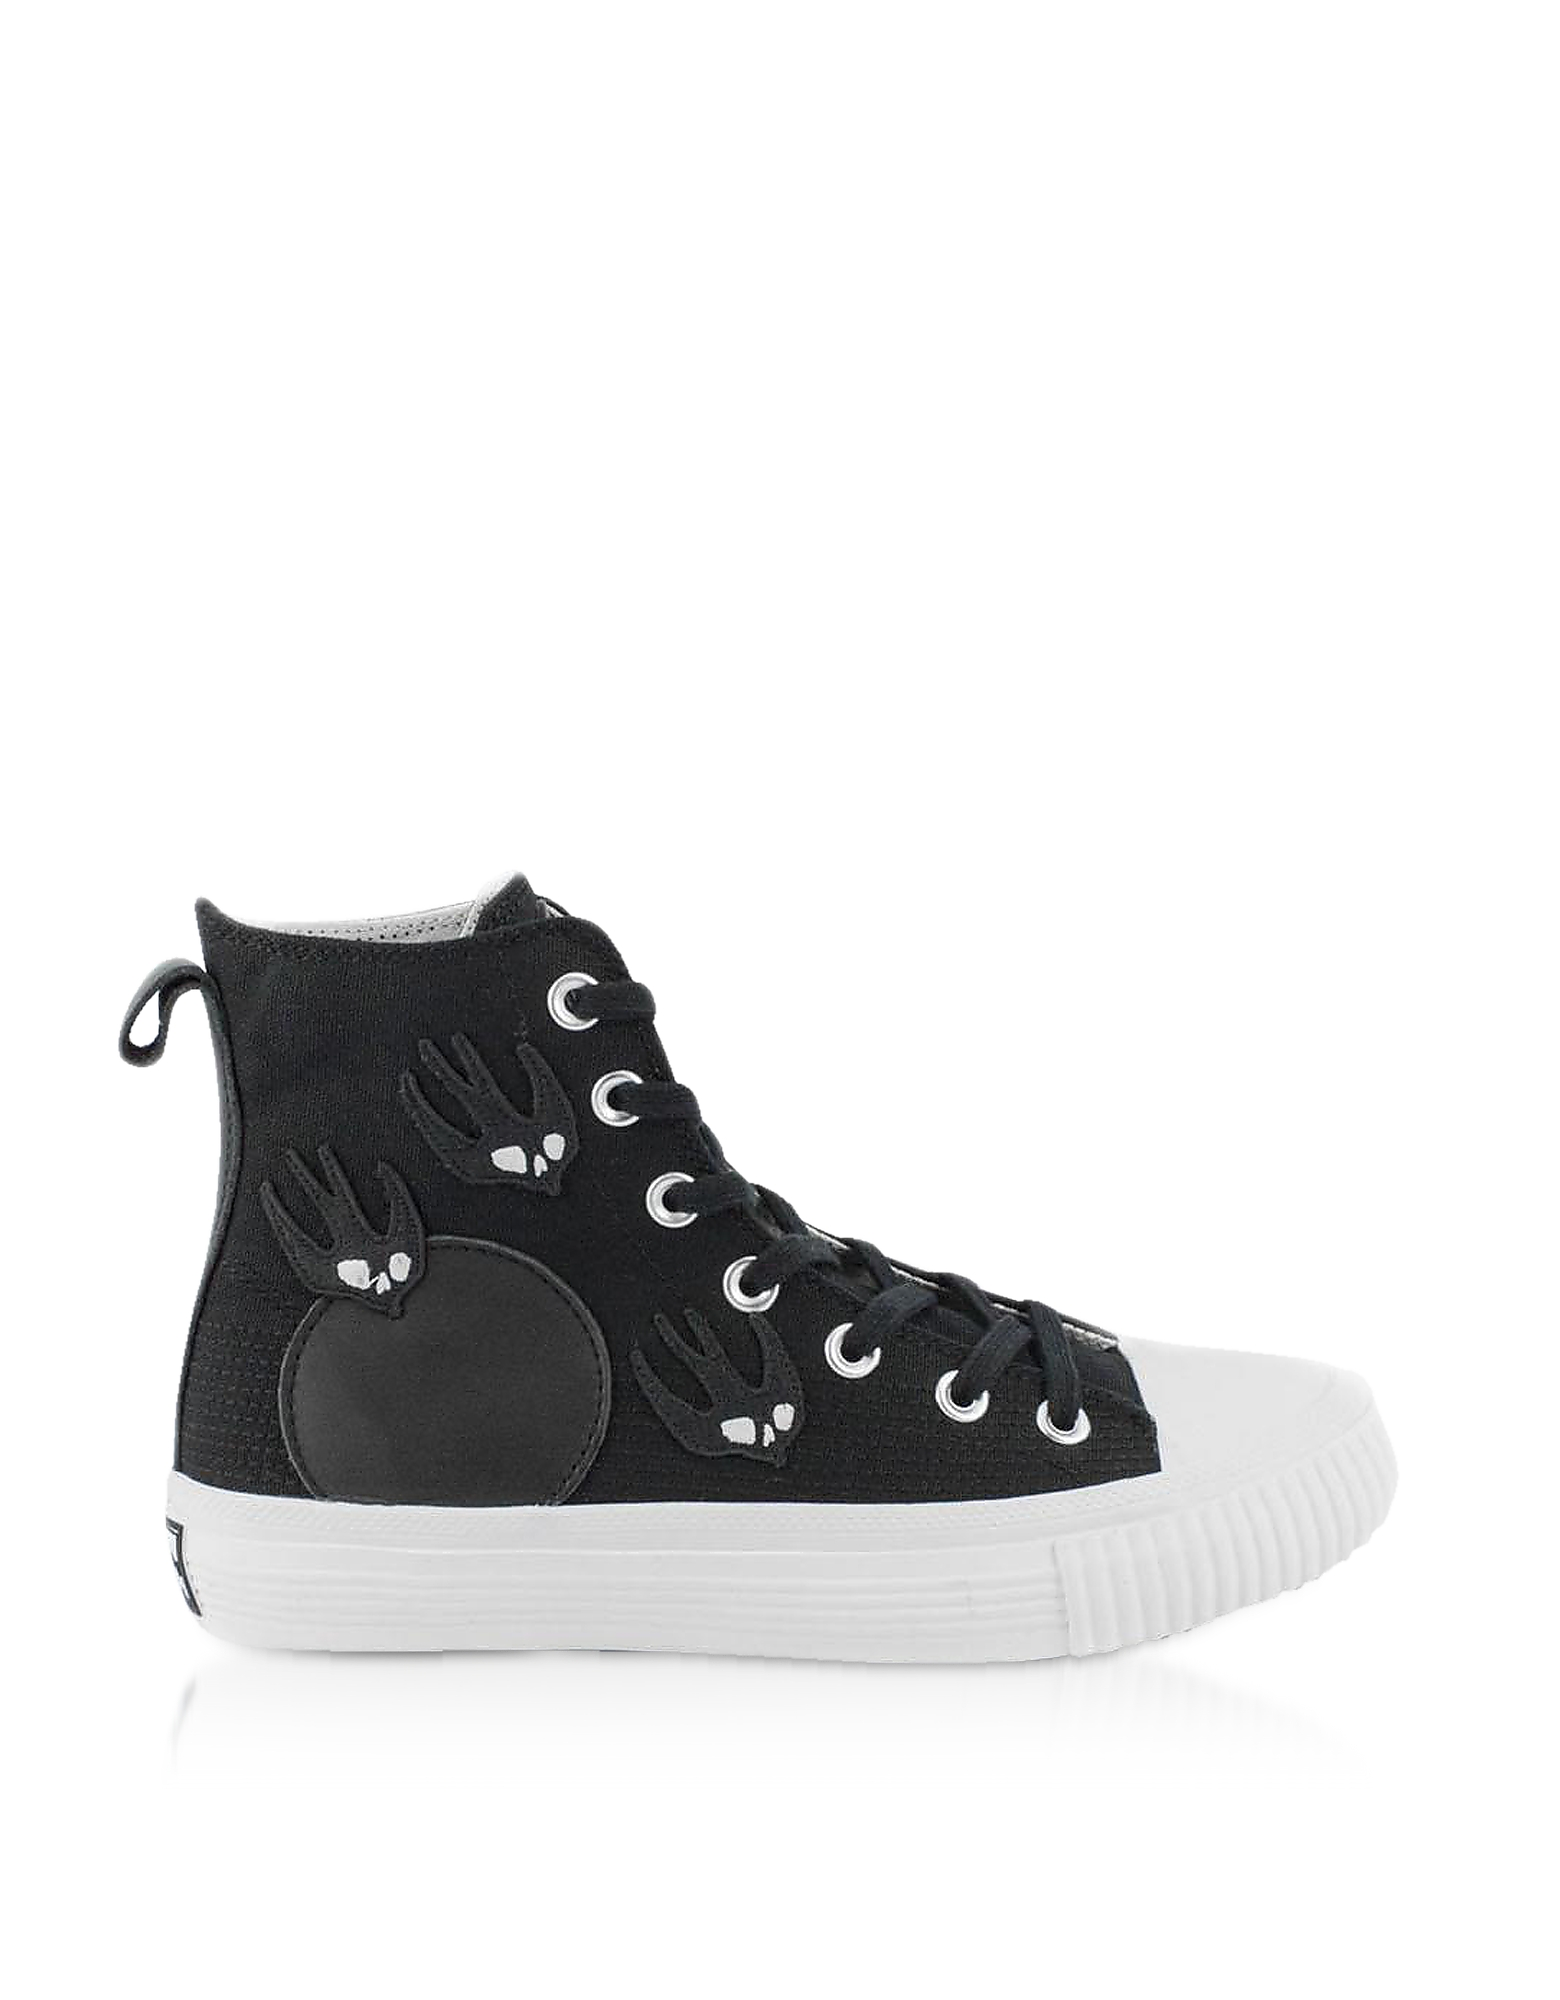 Alexander McQueen Designer Shoes, Canvas High Top Sneakers w/Swallow Patches